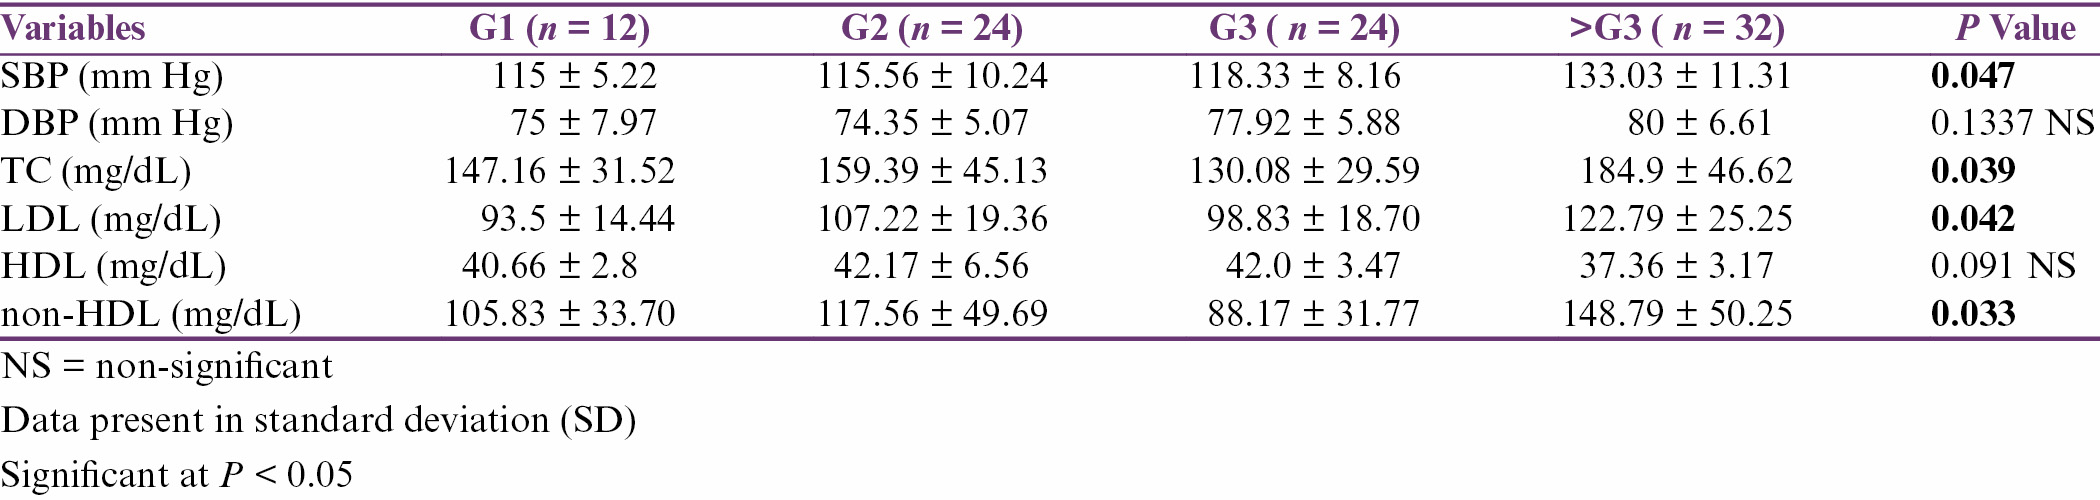 Table 6: Association between gravidity and variables of Framingham risk score